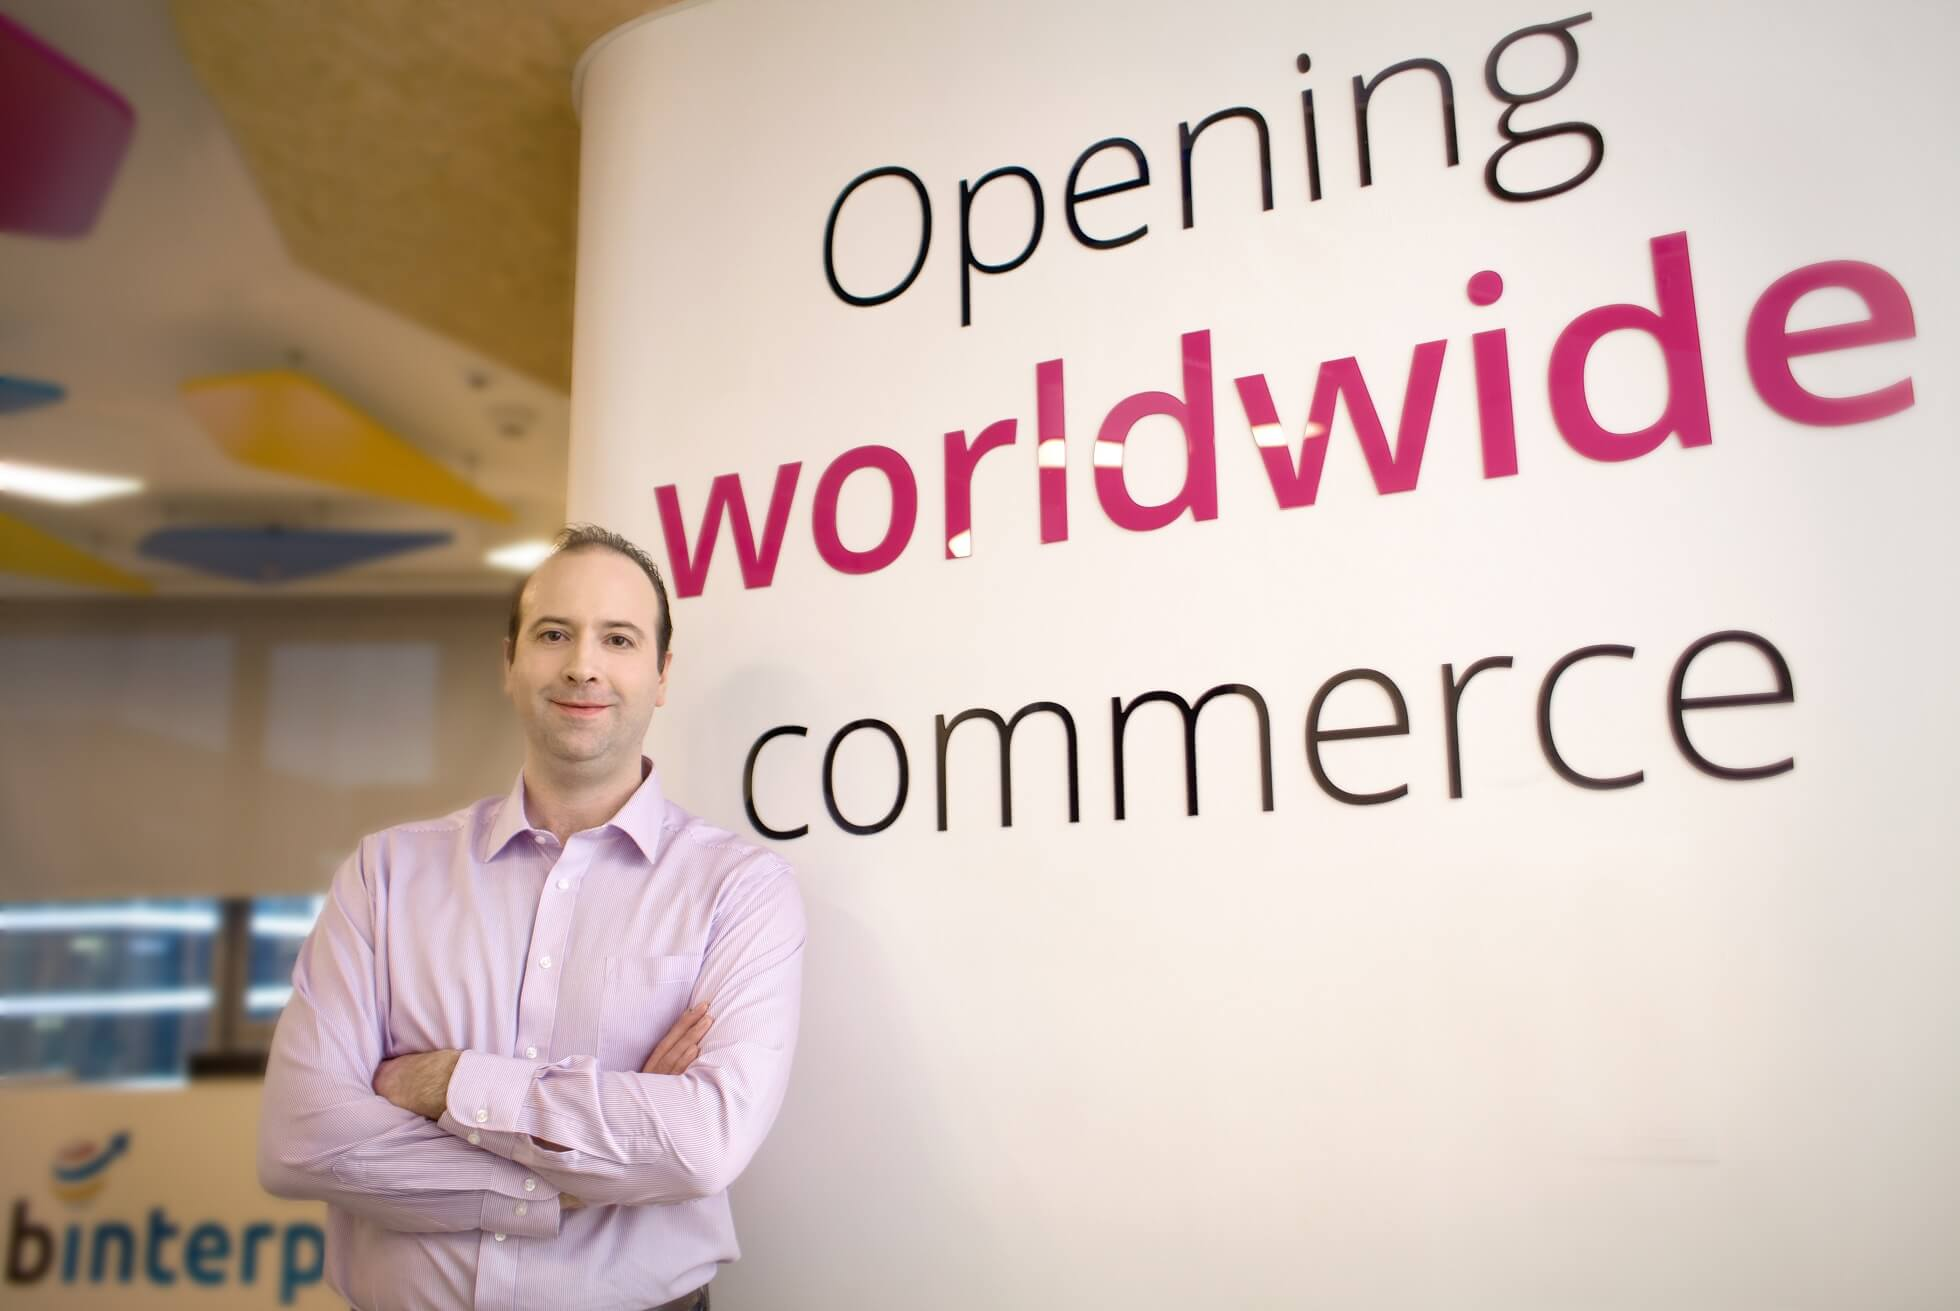 opening worldwide ecommerce